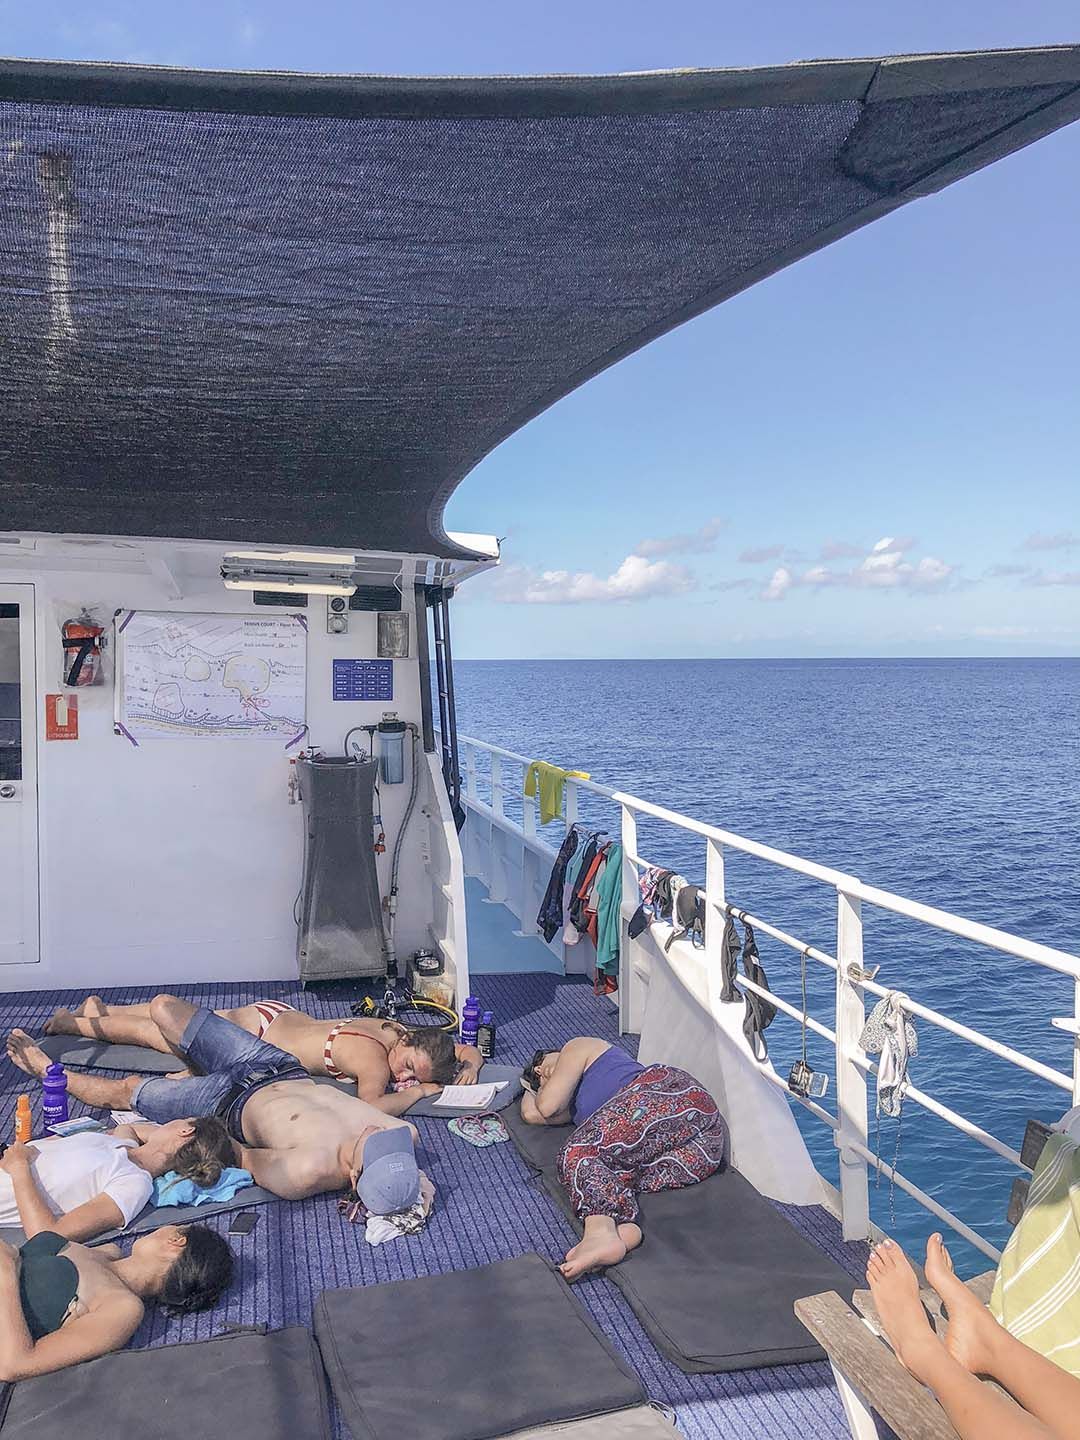 Resting during surface intervals after scuba diving in the Great Barrier Reef